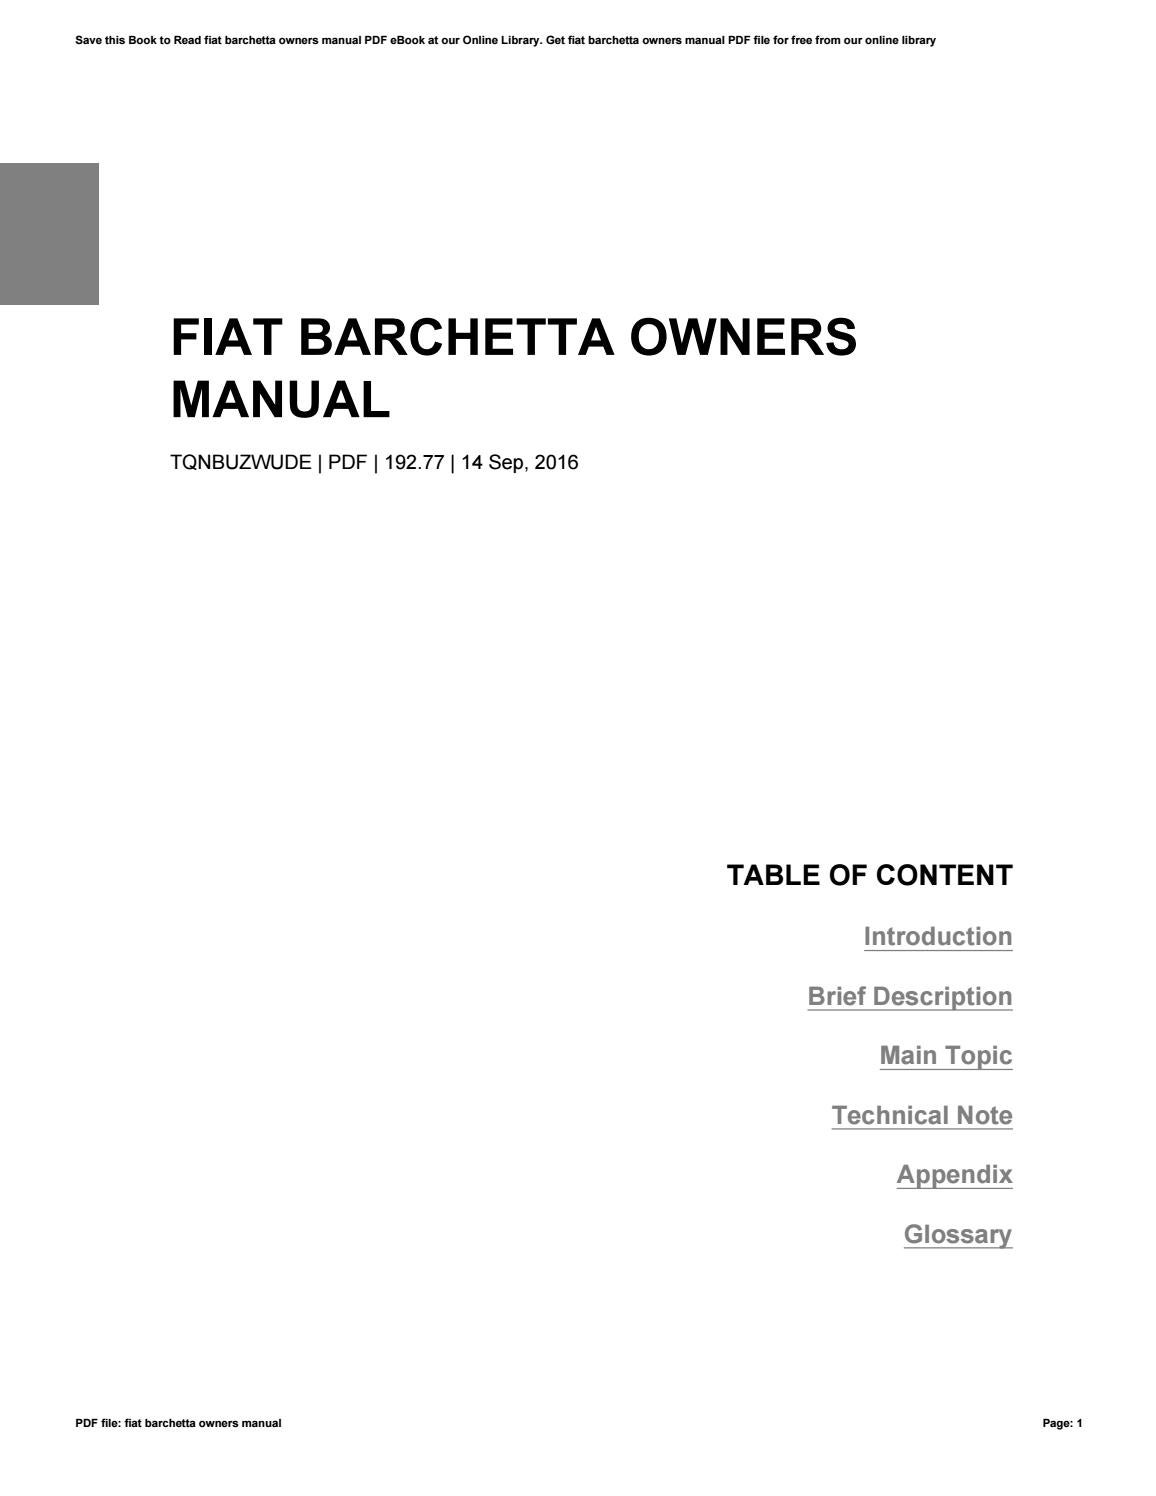 hight resolution of fiat barchetta wiring diagram 1 wiring diagram source 12 fiat 500 wiring diagram fiat barchetta wiring diagram